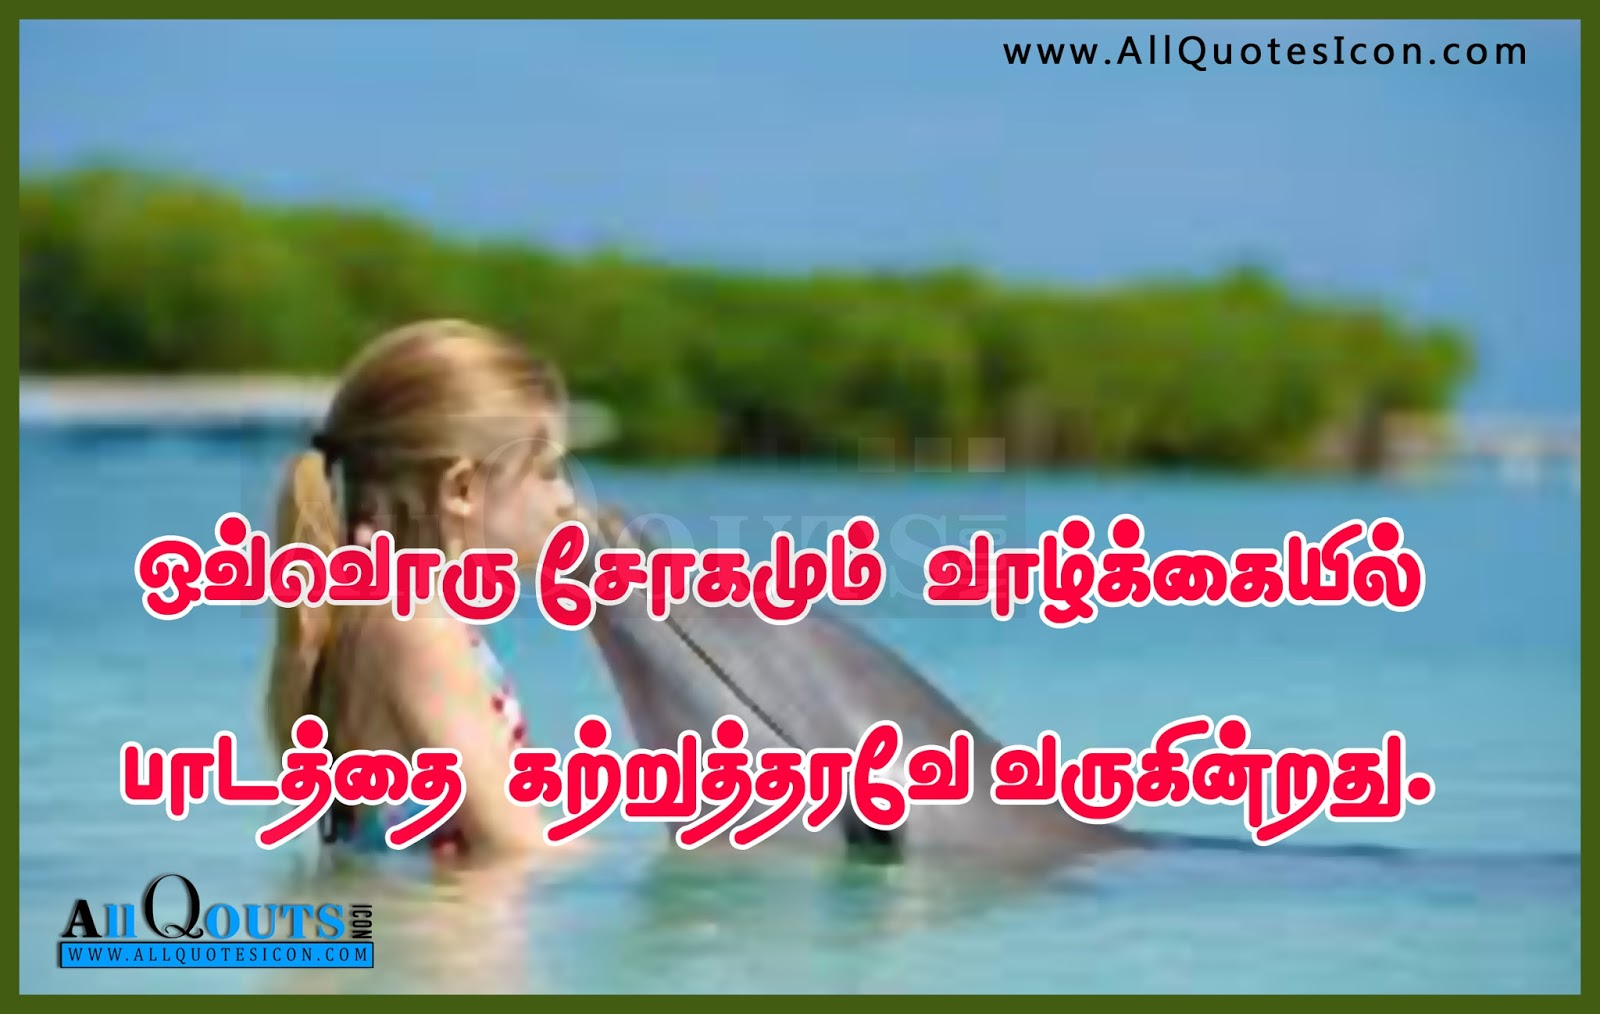 best friendship in tamil Find the best whatsapp group names for family funny, best, love, sad here, i sorted many exciting and cool whatsapp group names according to your group type i added whatsapp group names for best friends, cousins, family members etc.